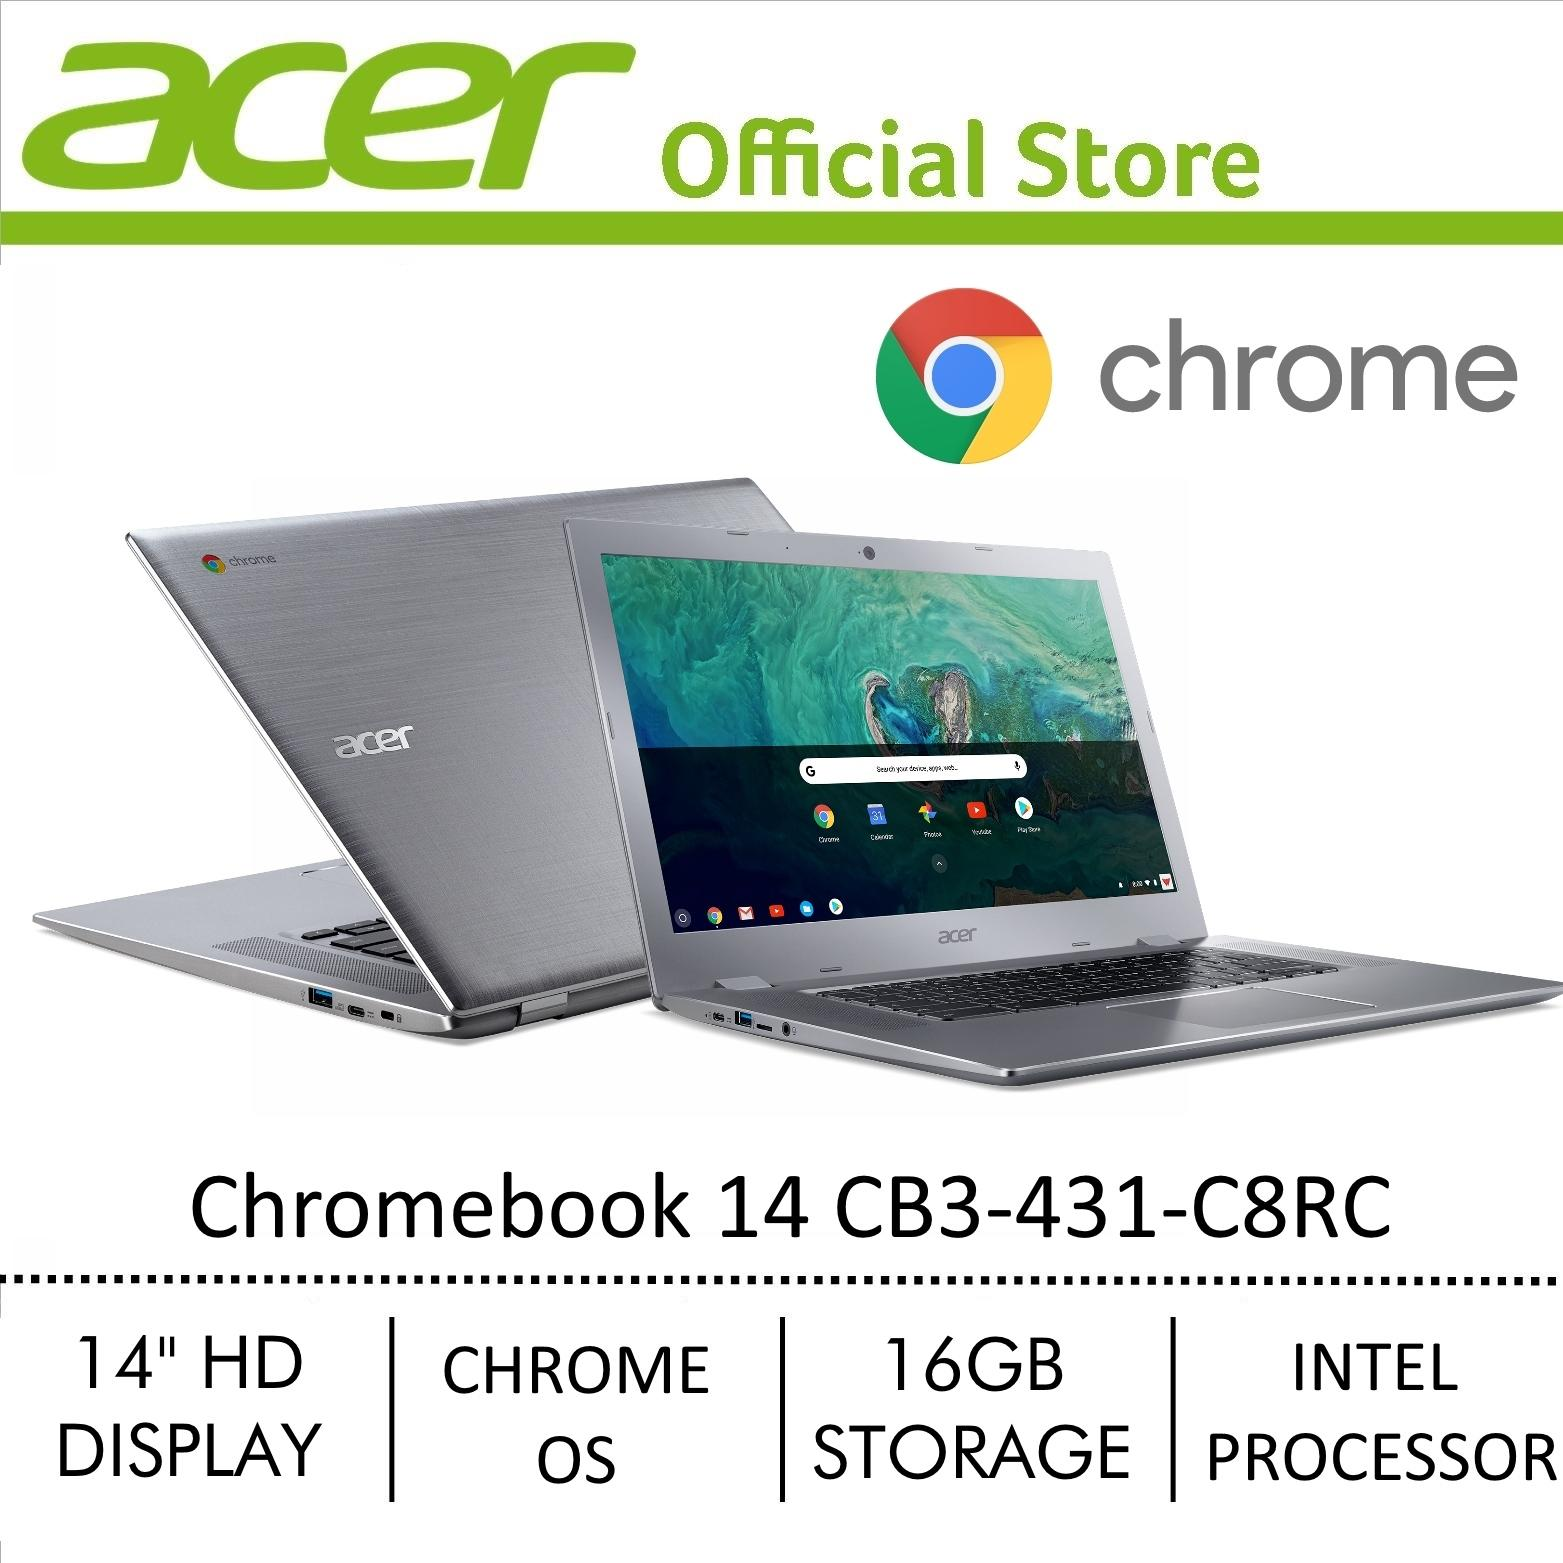 Acer Chromebook 14 CB3-431-C8RC